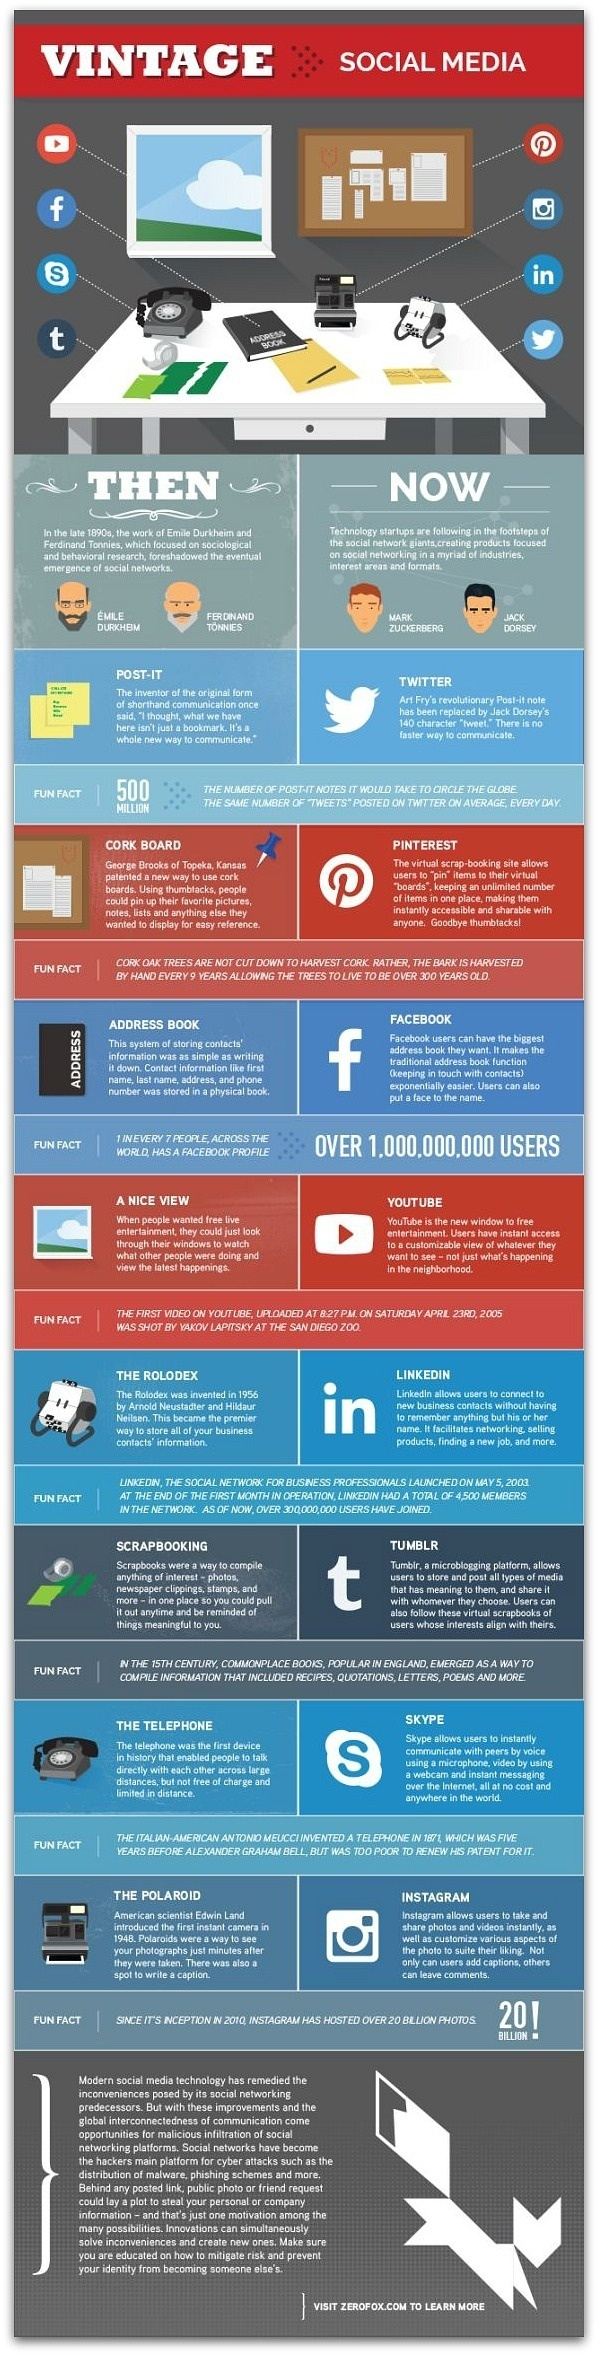 Social media then and now #infographic